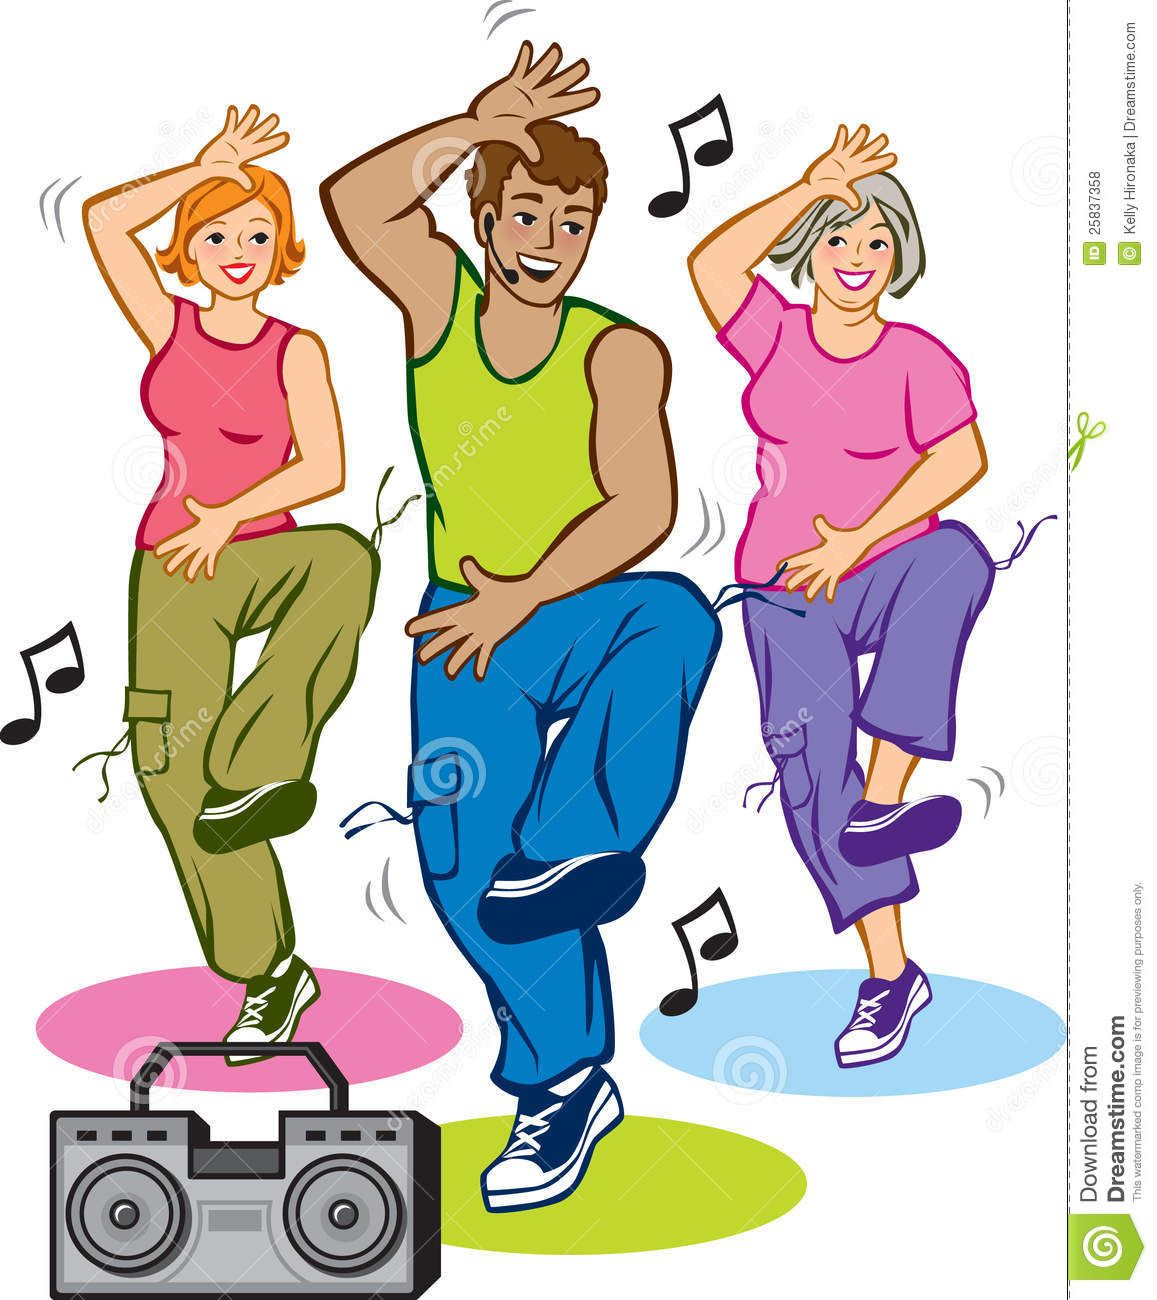 Going to the gym clipart clipart black and white library clipart danse   Vector Illustration of 3 people exercising in a ... clipart black and white library